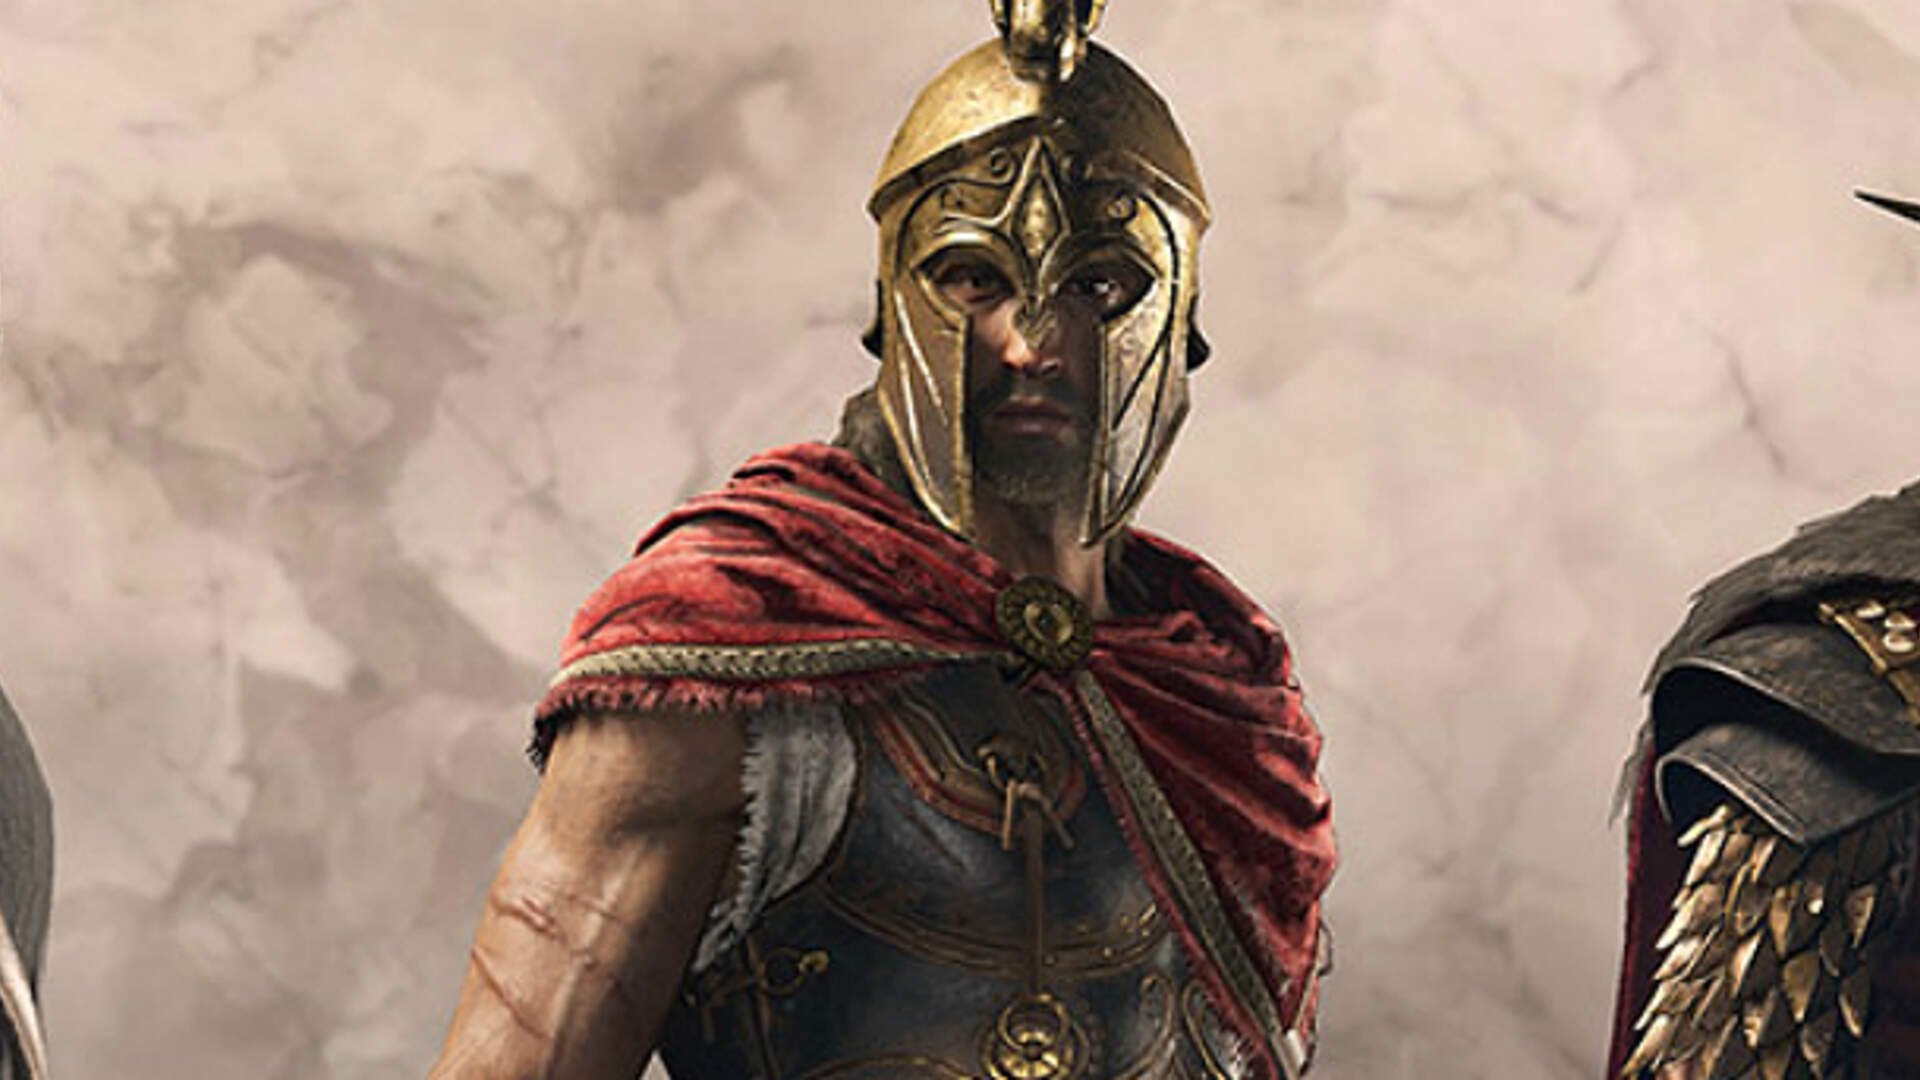 Assassin's Creed Odyssey's Leveling and Microtransaction Controversy is Largely Overblown